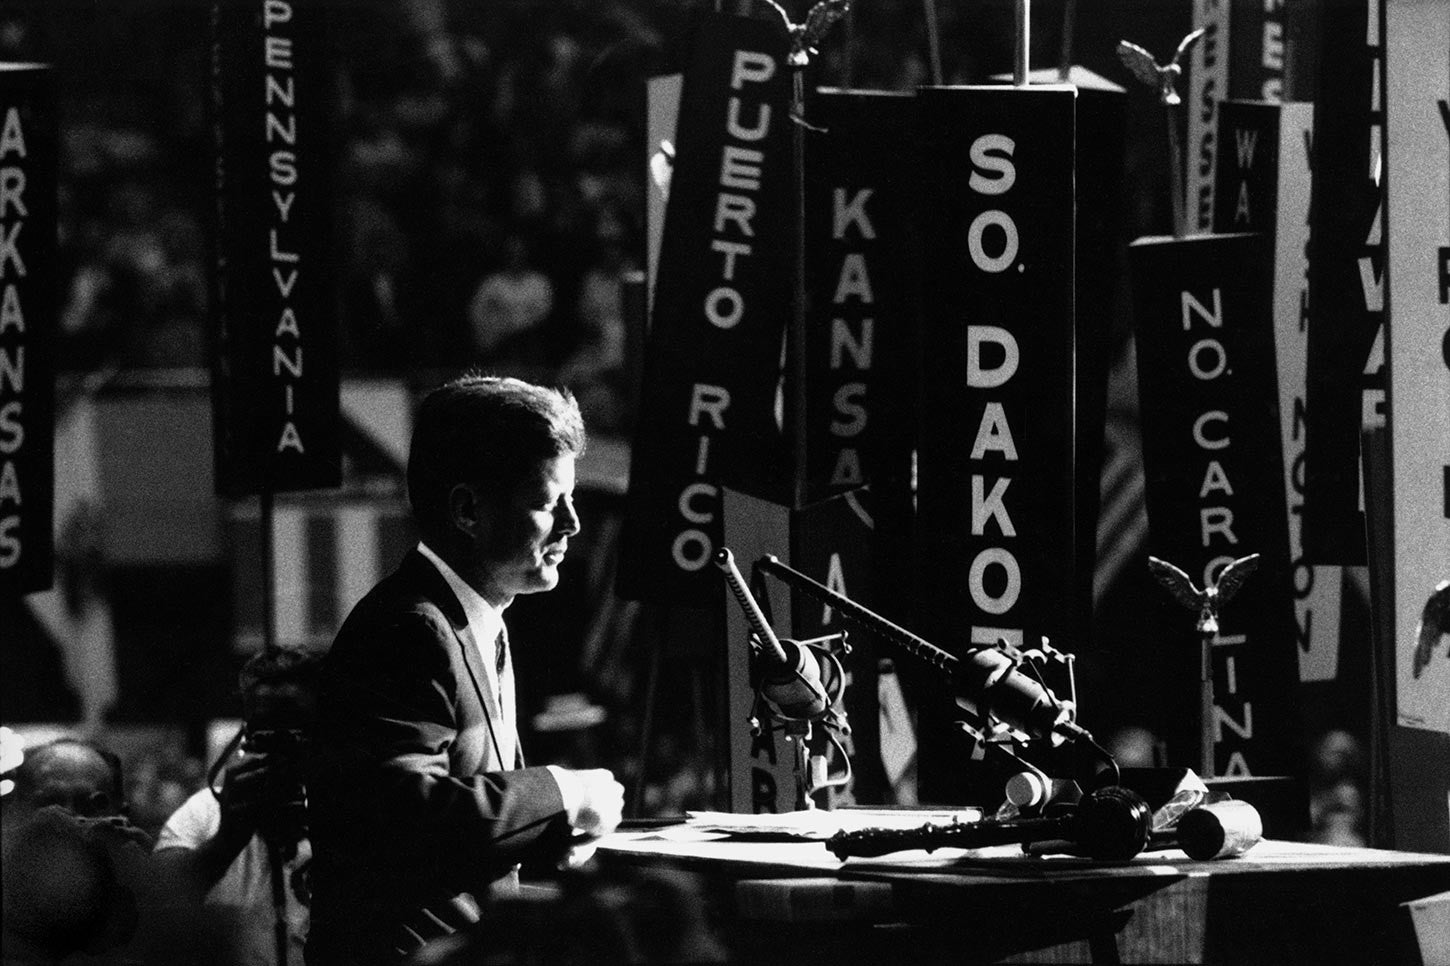 John F. Kennedy accepting the nomination at the Democratic Convention. Los Angeles, 1960.